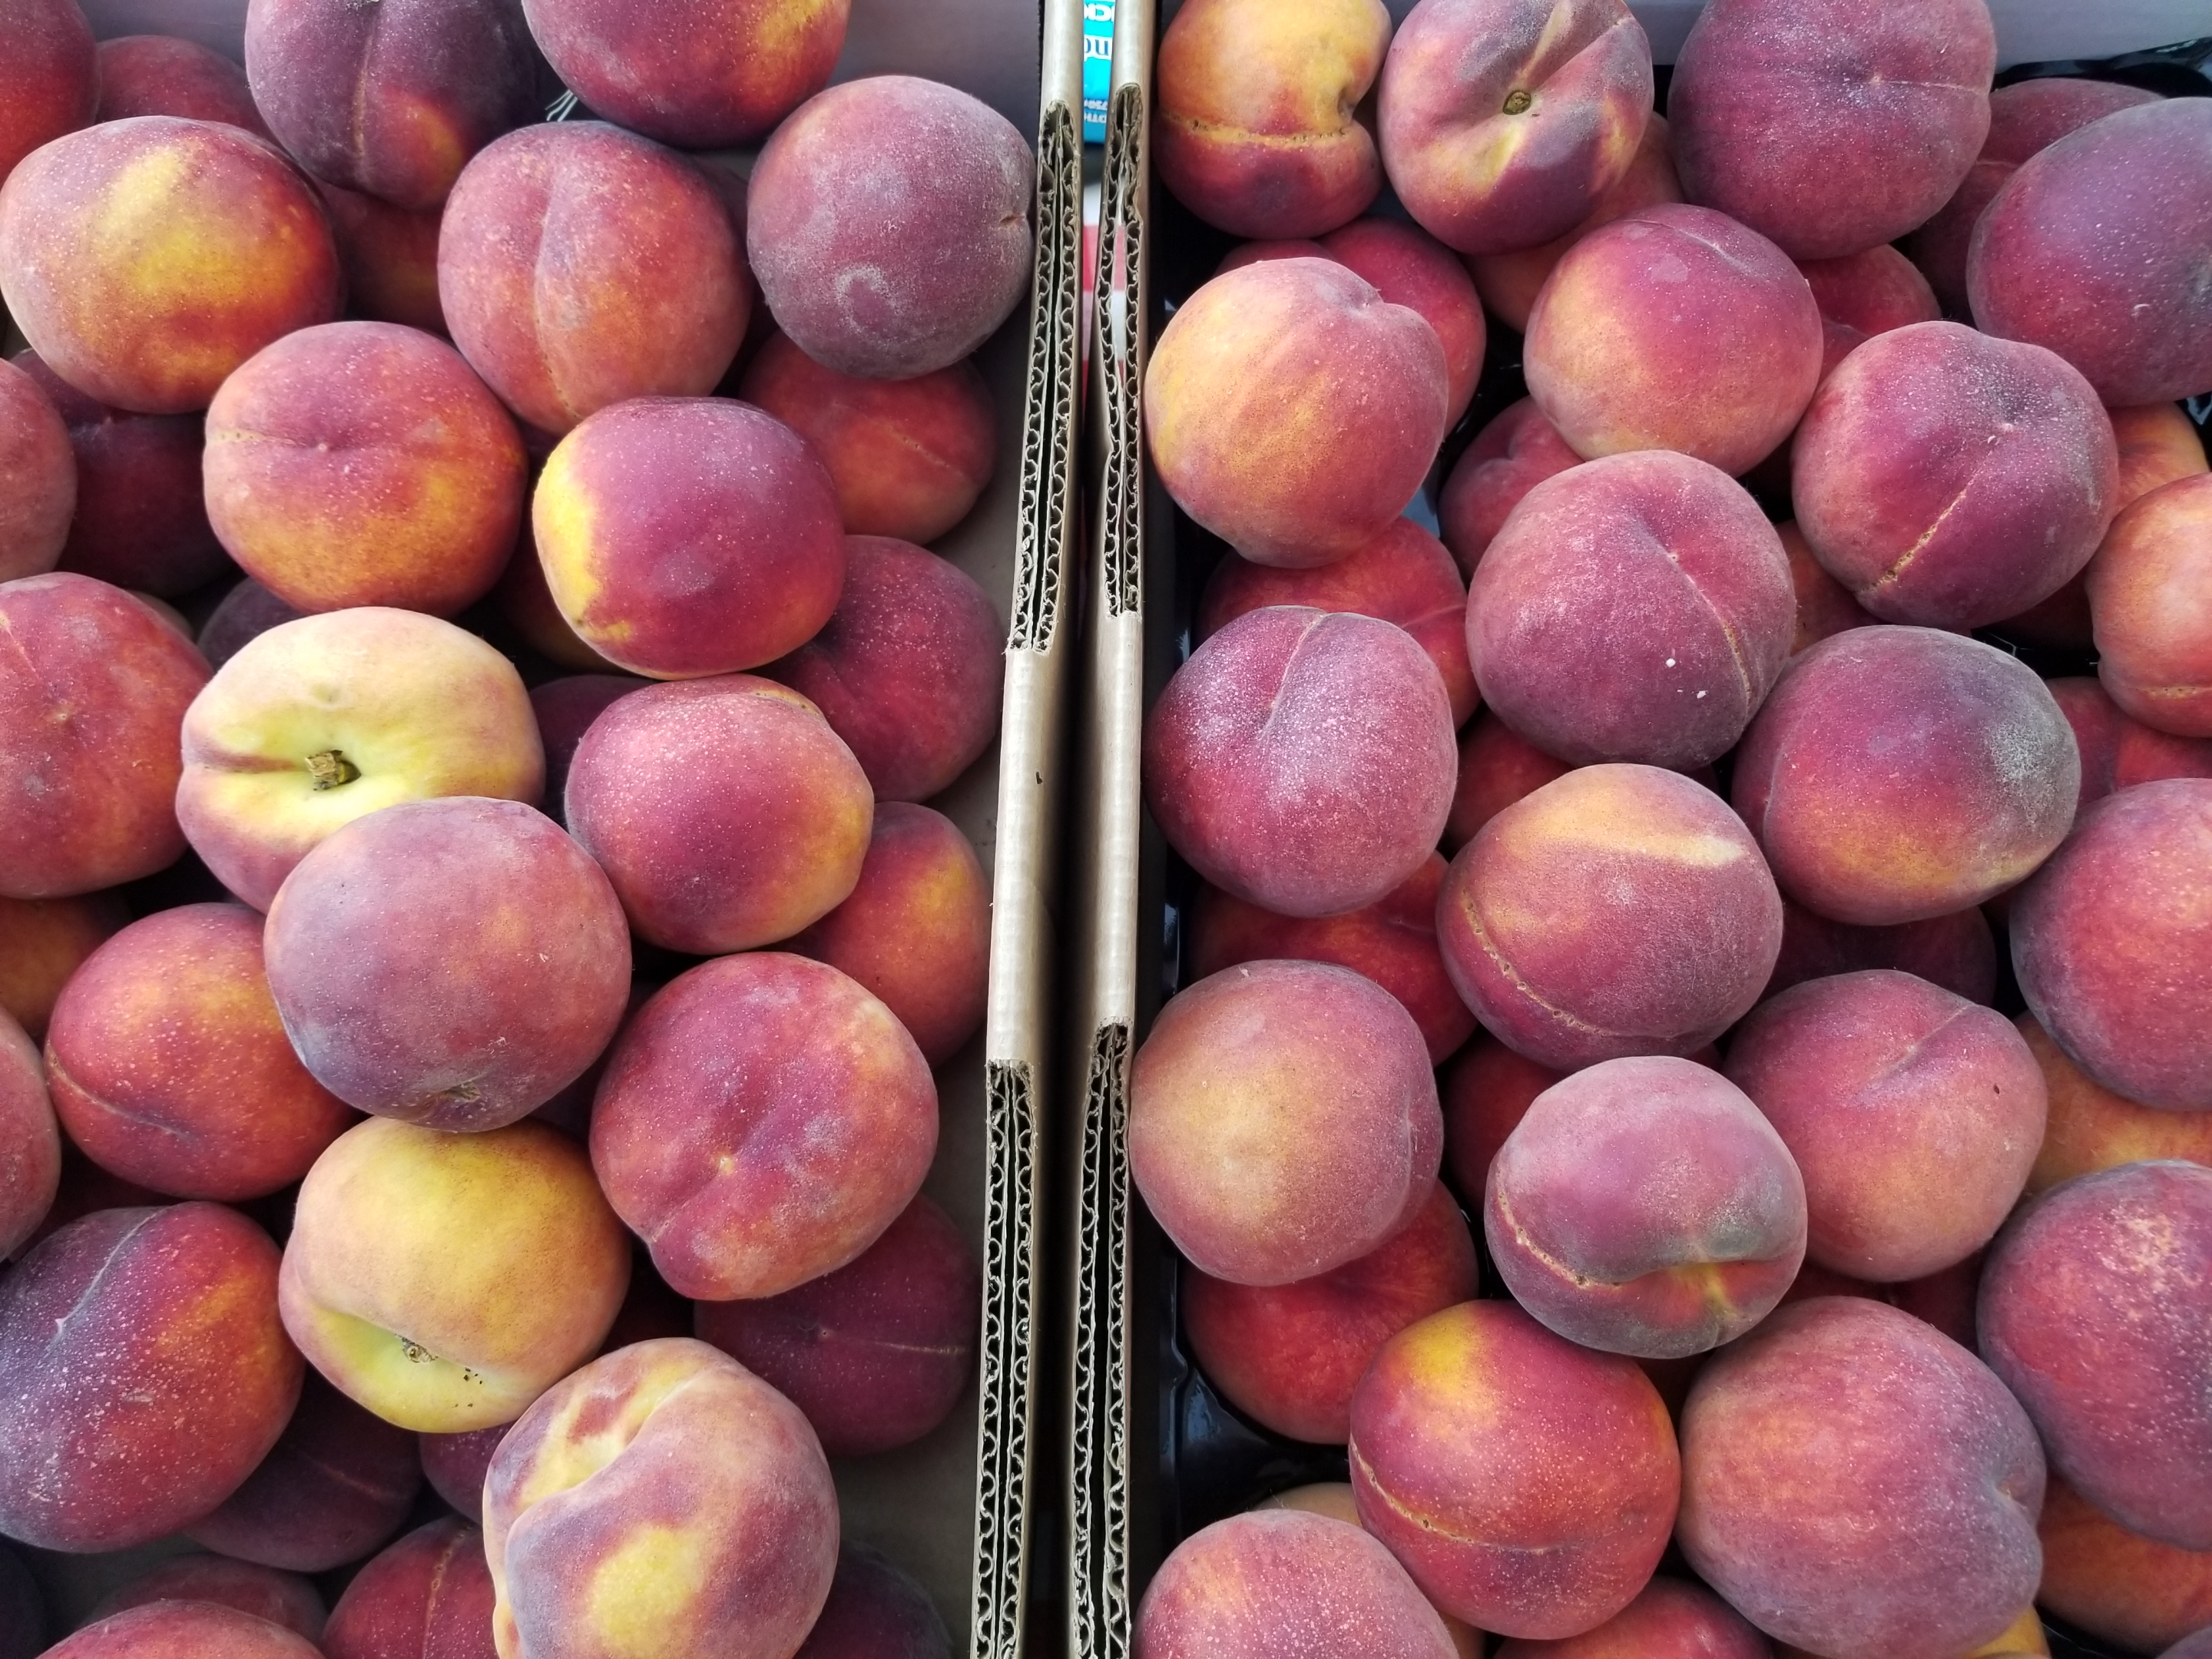 Peaches, cherries, berries and heirloom tomatoes today at